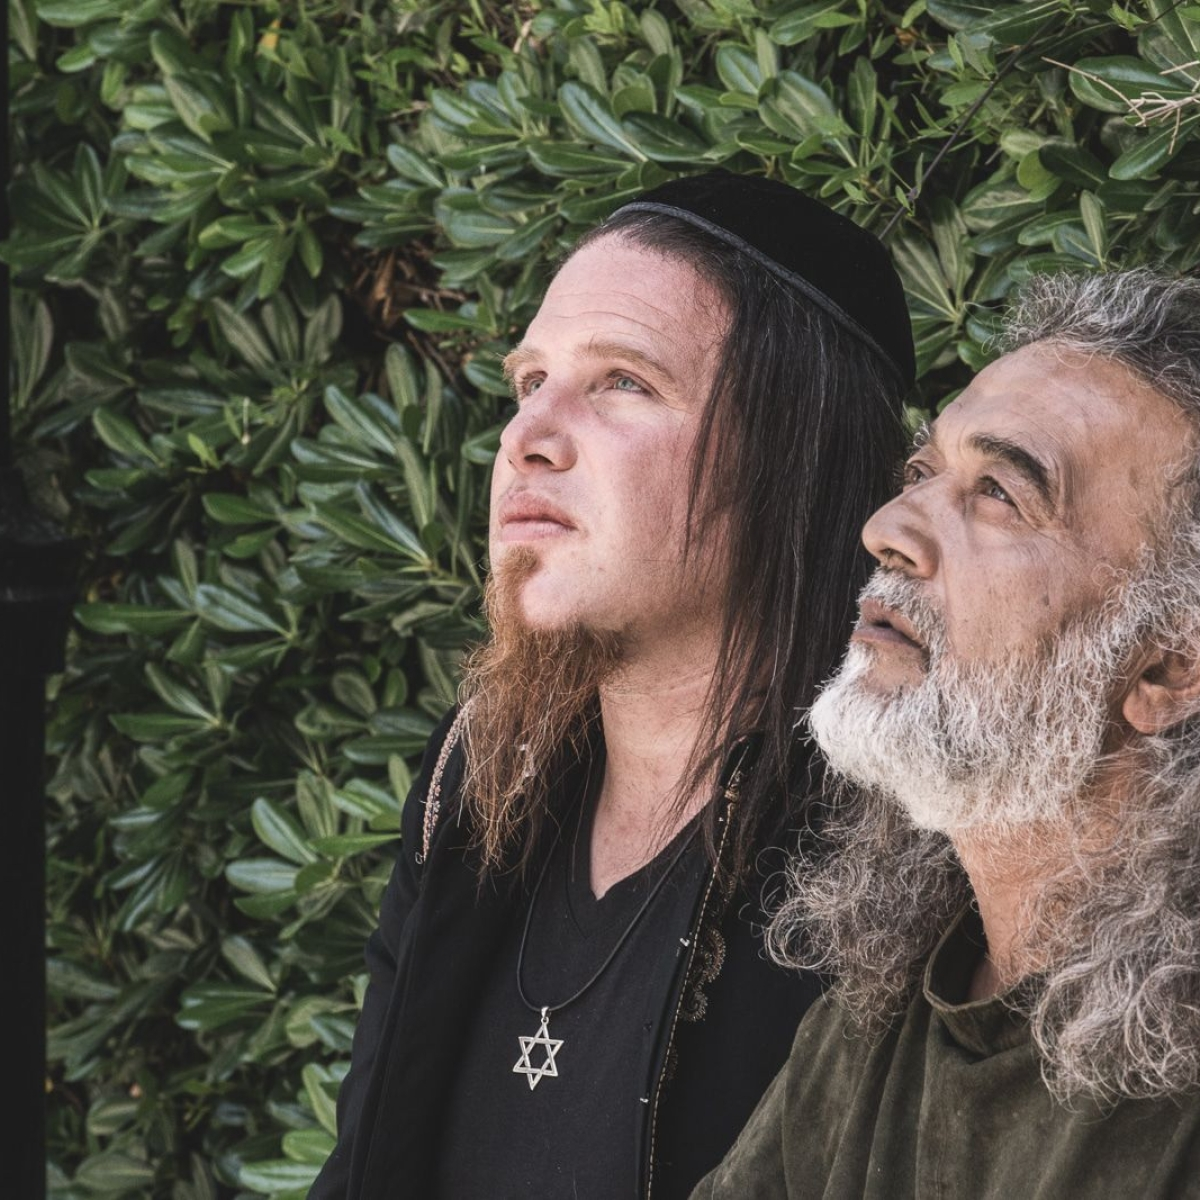 'Lemalla is a discovery in itself': Lucky Ali on collaboration with Israeli musician Eliezer Botzer